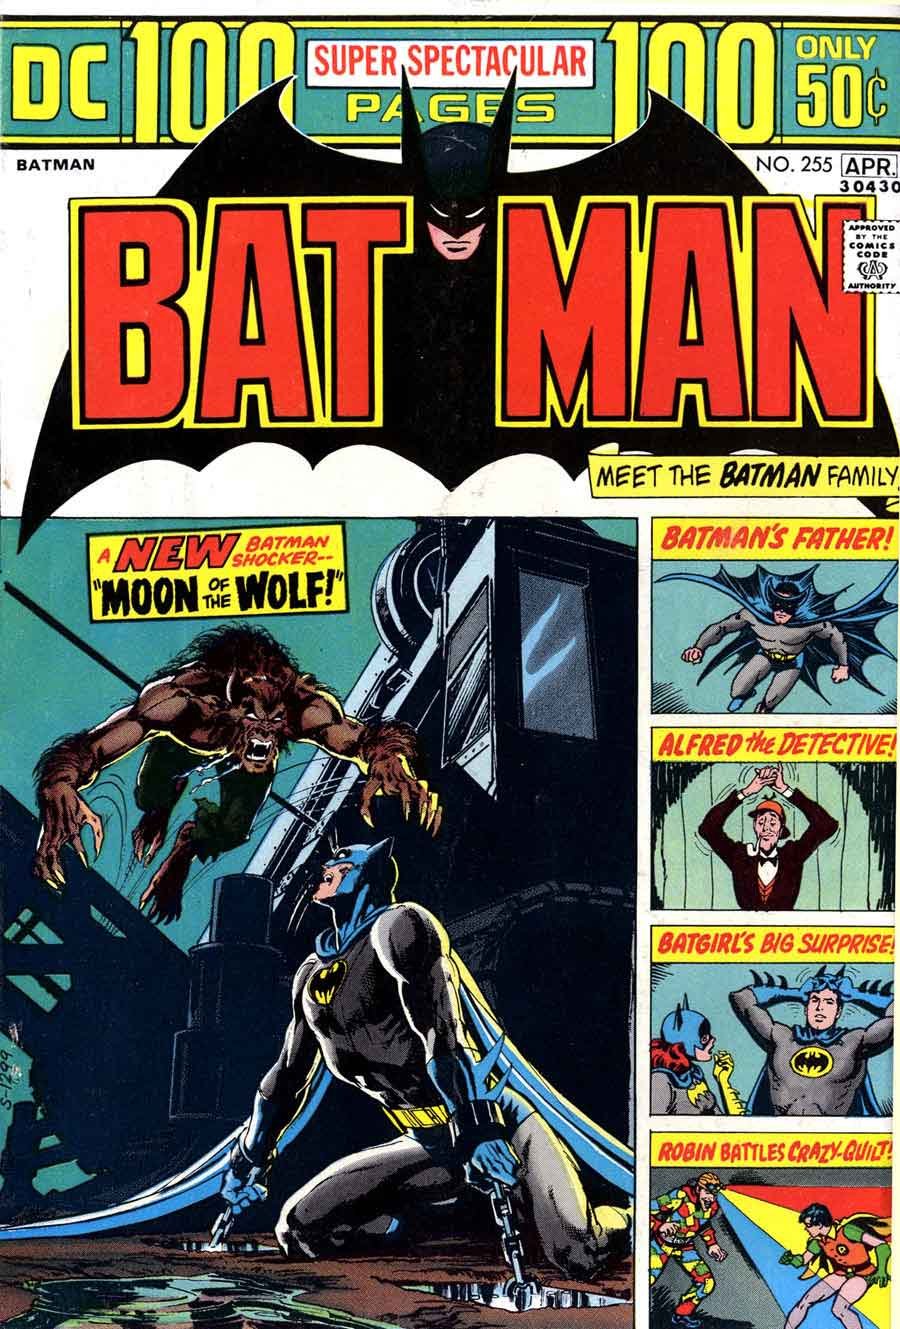 Batman v1 #255 dc comic book cover art by Neal Adams